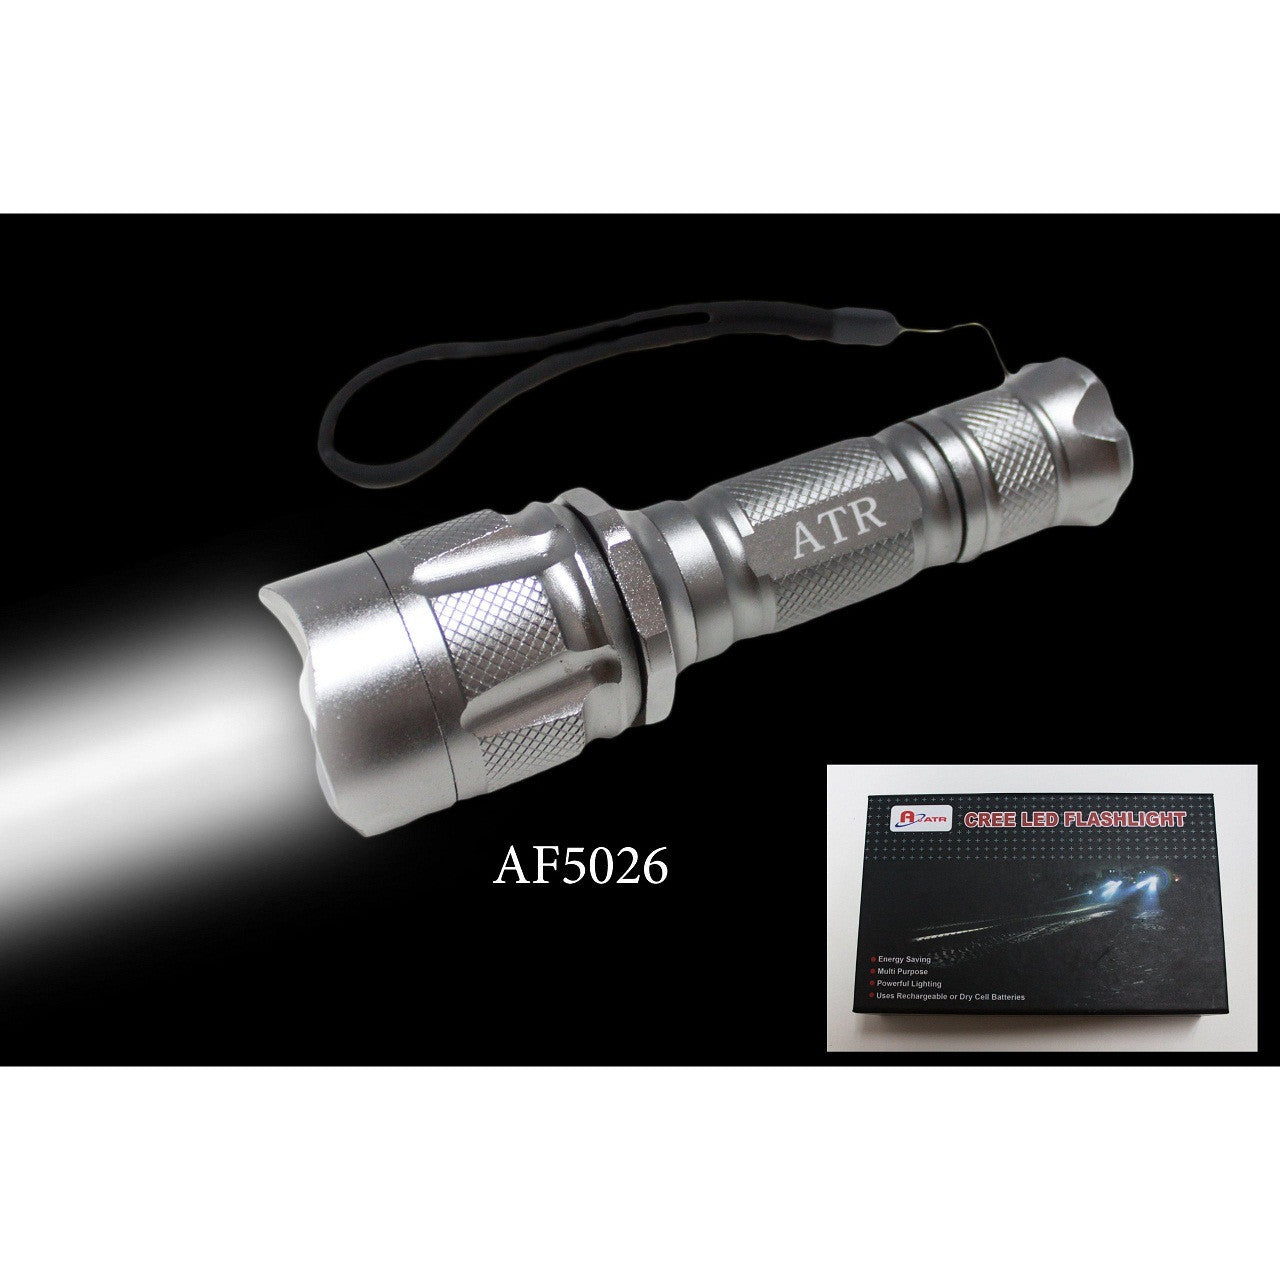 "Rechargeable Power Style LED Focalize Q5 Cree LED 250 Lumen Flashlight 6"" Long - AF5026"